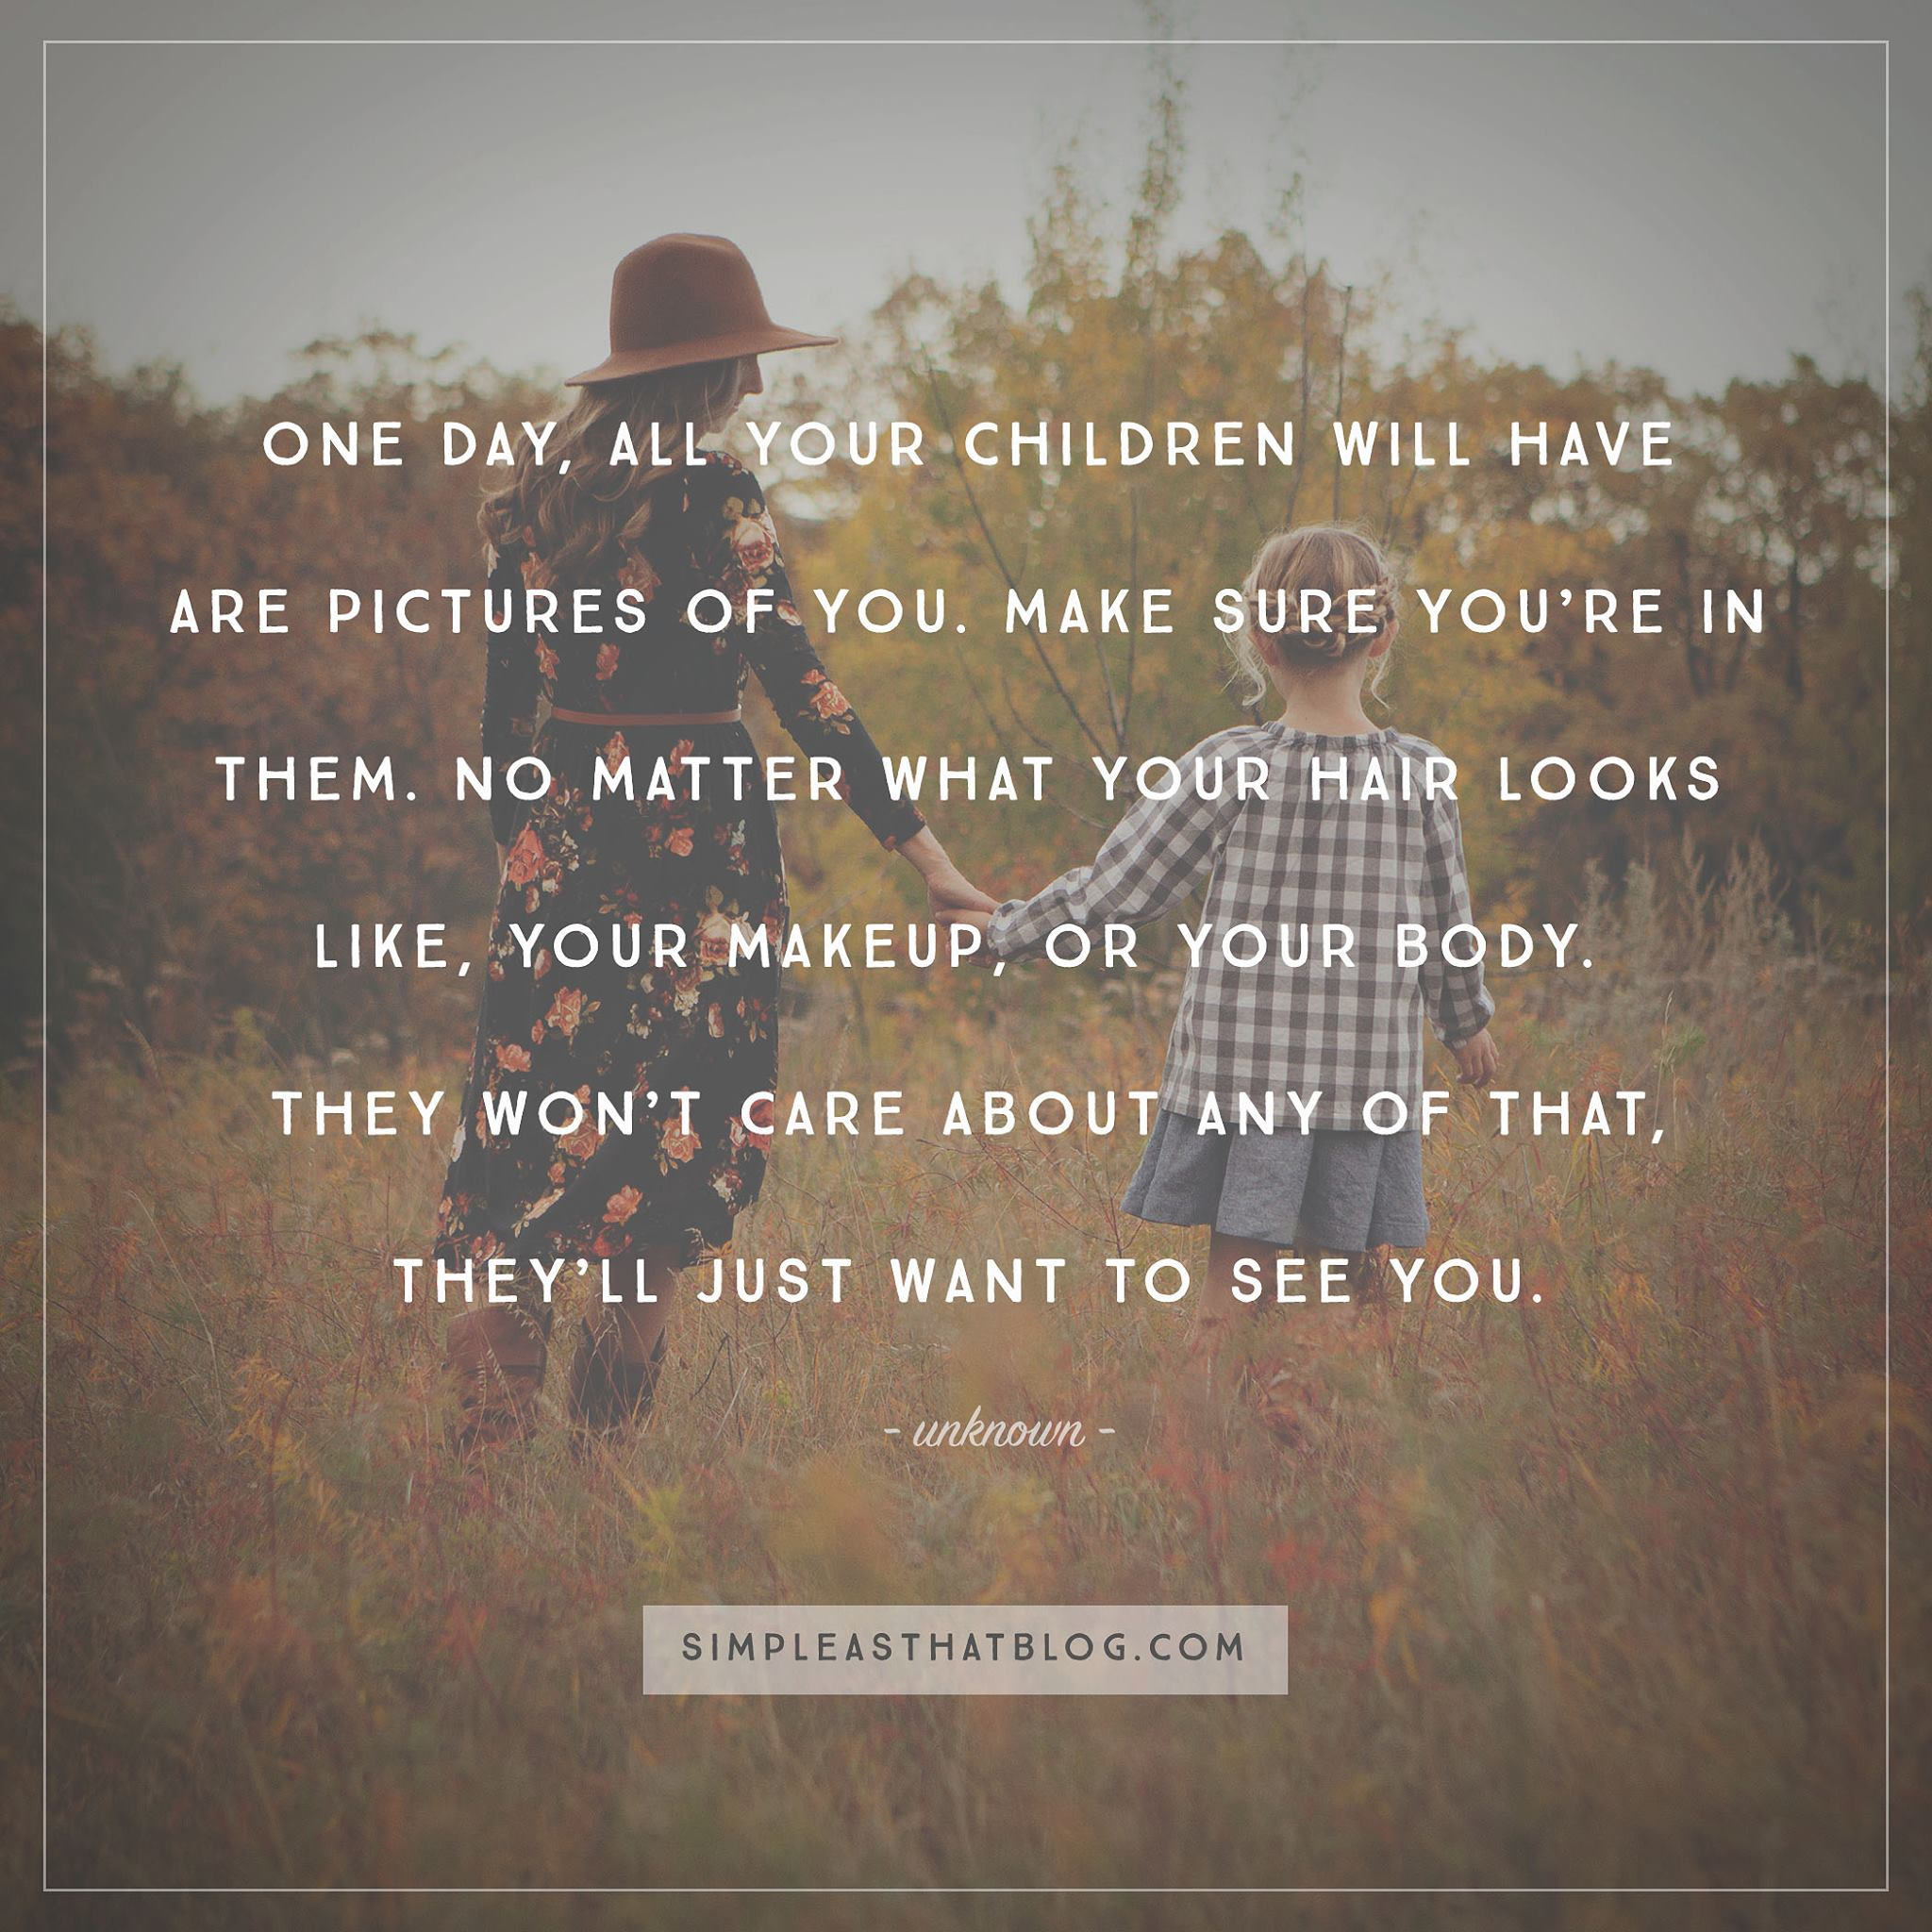 """One day all your children will have is pictures of you. Make sure your in them. No matter what your hair looks like, you make up or your body, they won't care about any of that, they'll just want to see you. Do it for them."" –Unknown"